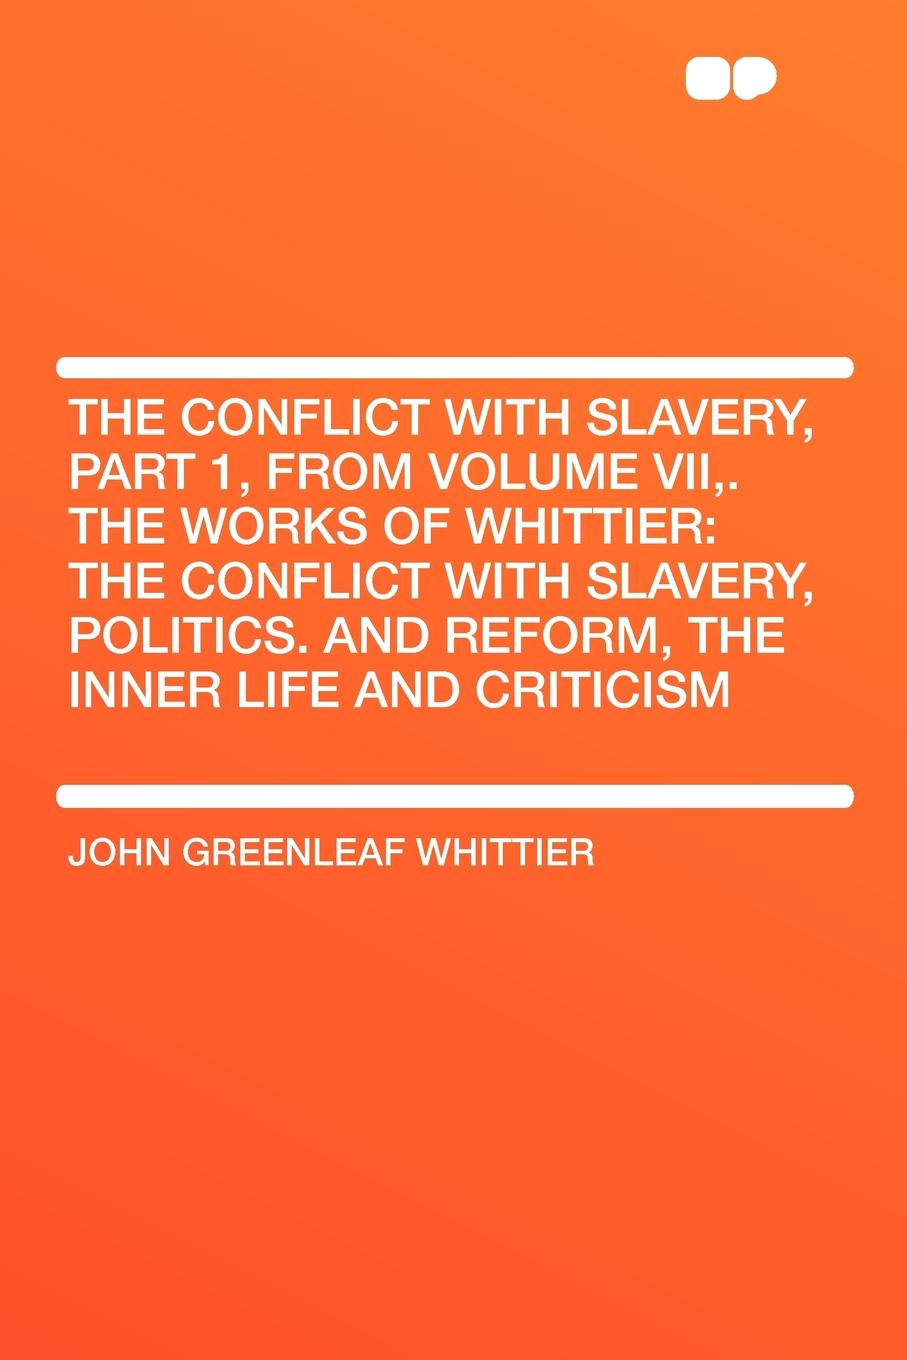 John Greenleaf Whittier The Conflict with Slavery, Part 1, from Volume VII,. The Works of Whittier. the Conflict with Slavery, Politics. and Reform, the Inner Life and Criticism john brademas the politics of education conflict and consensus on capitol hill